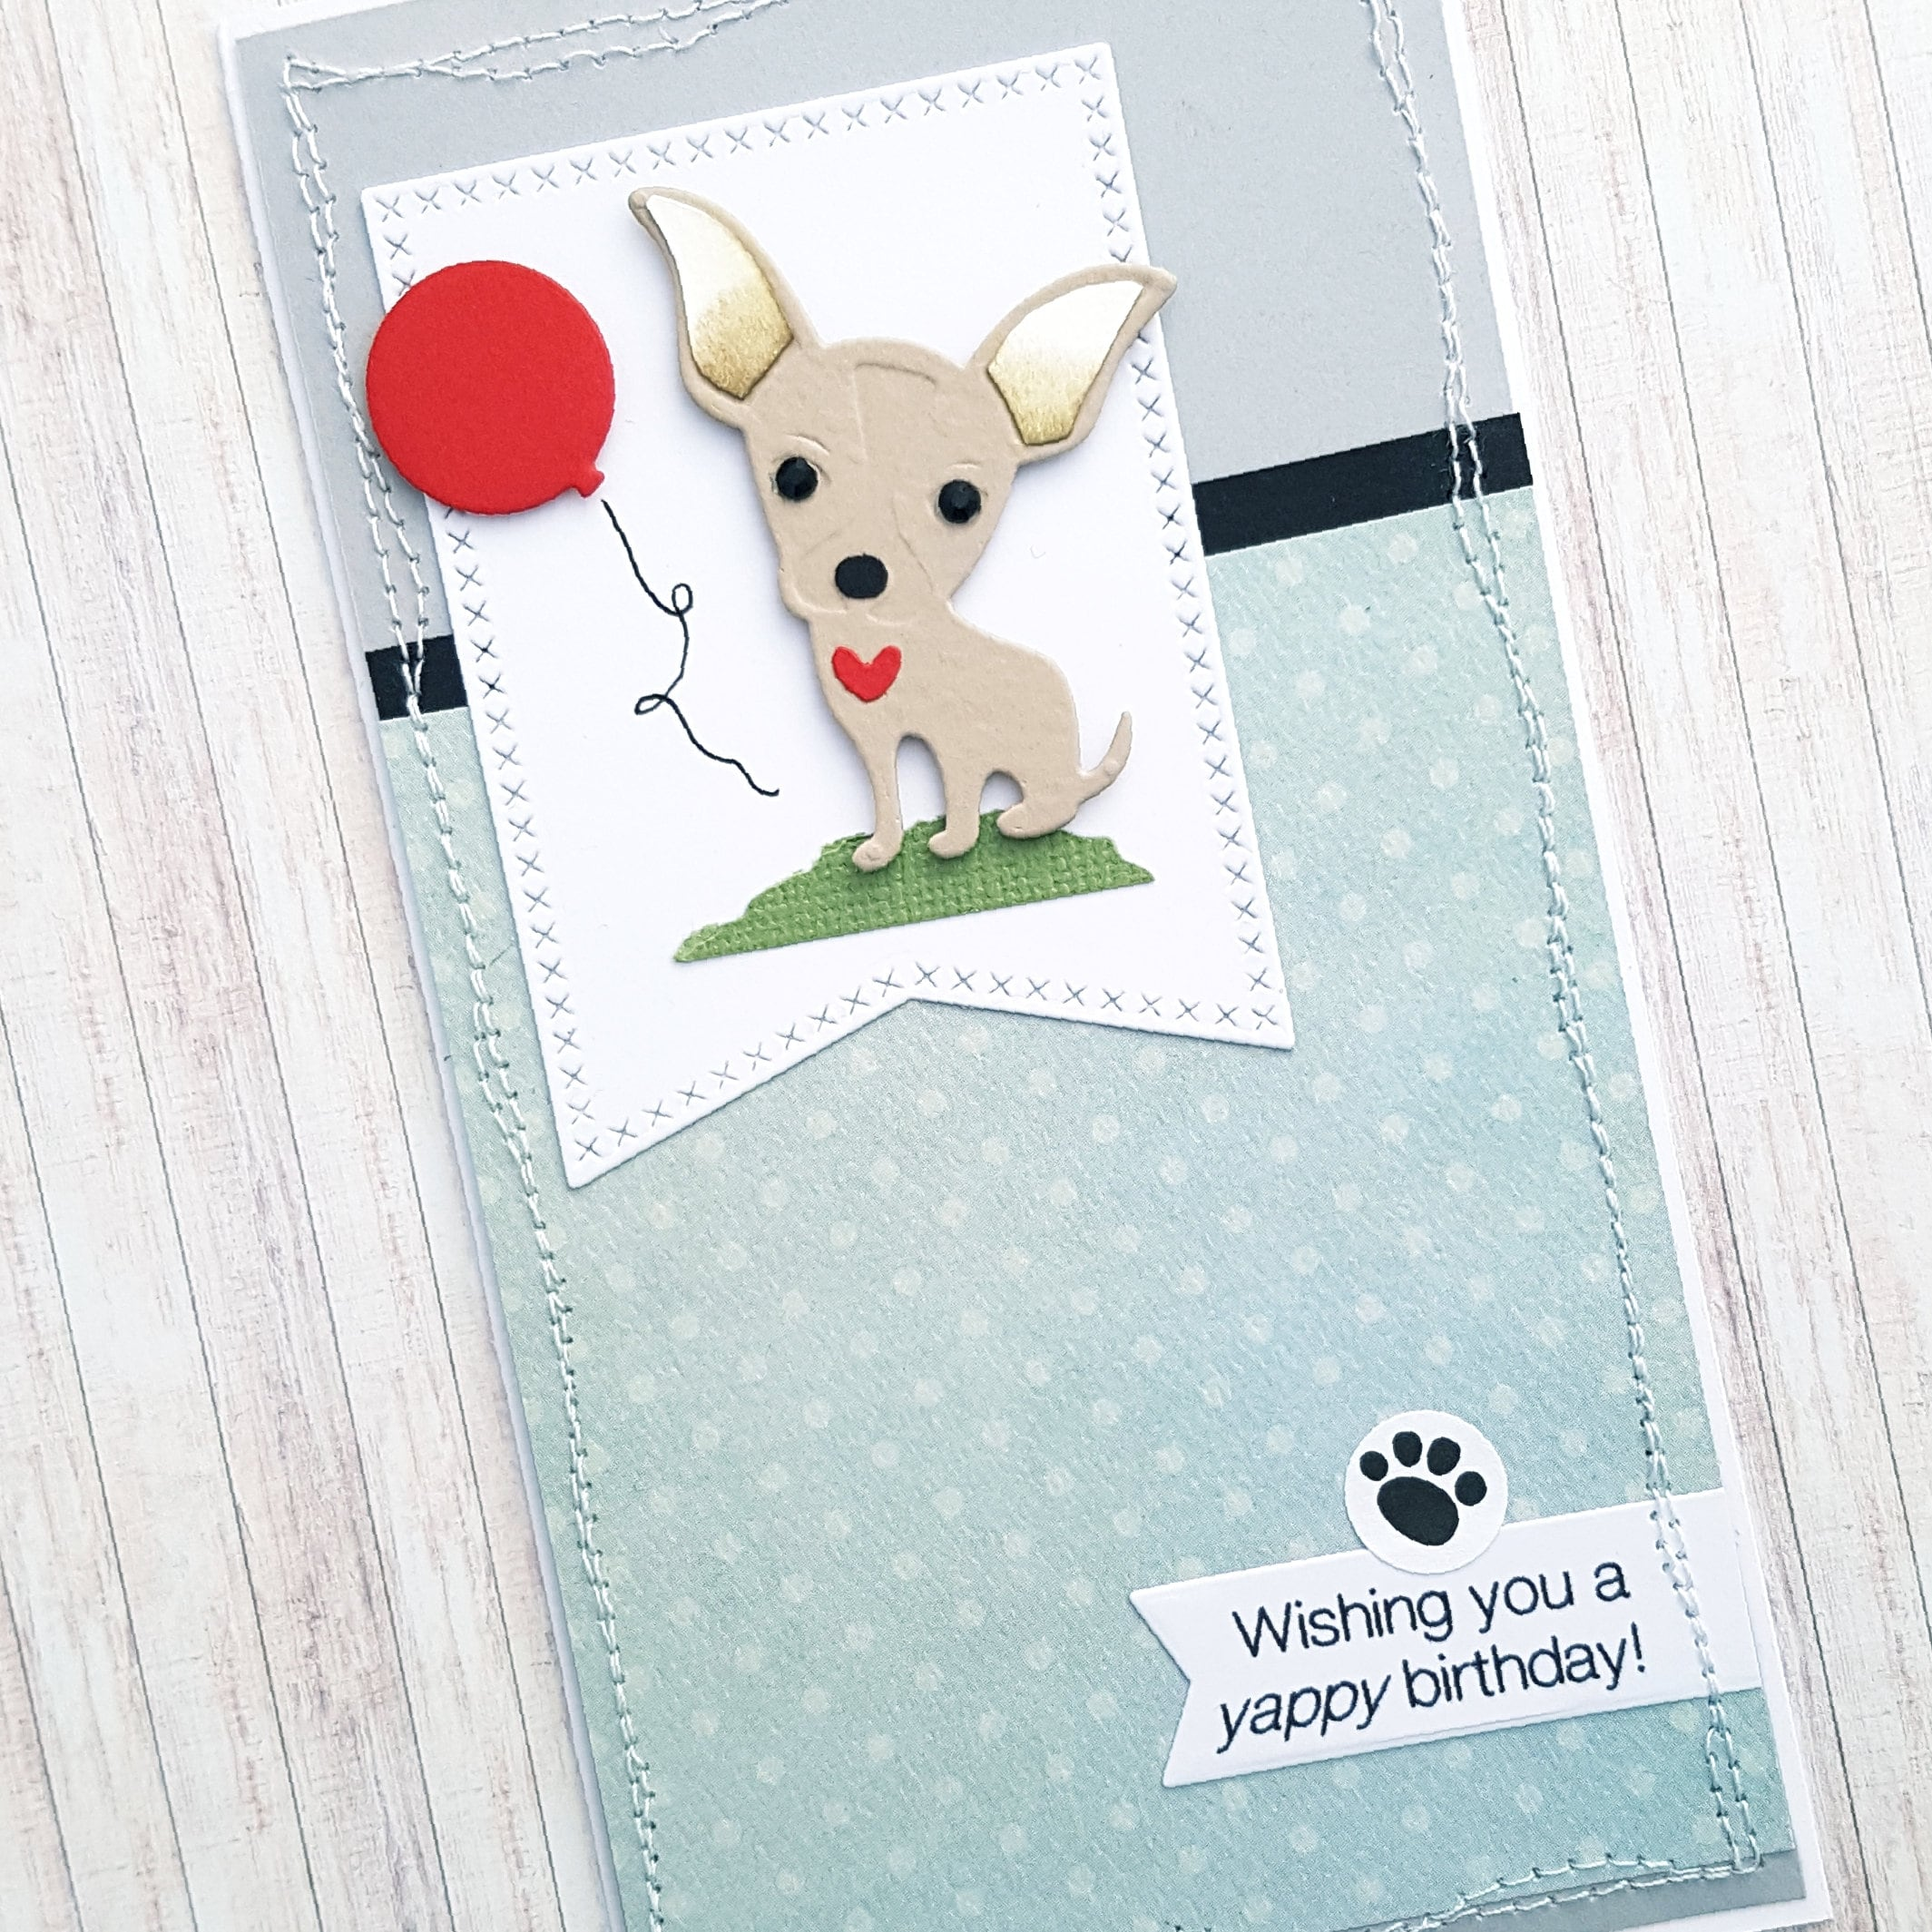 Yappy Birthday Card Cute Chihuahua Small Dog